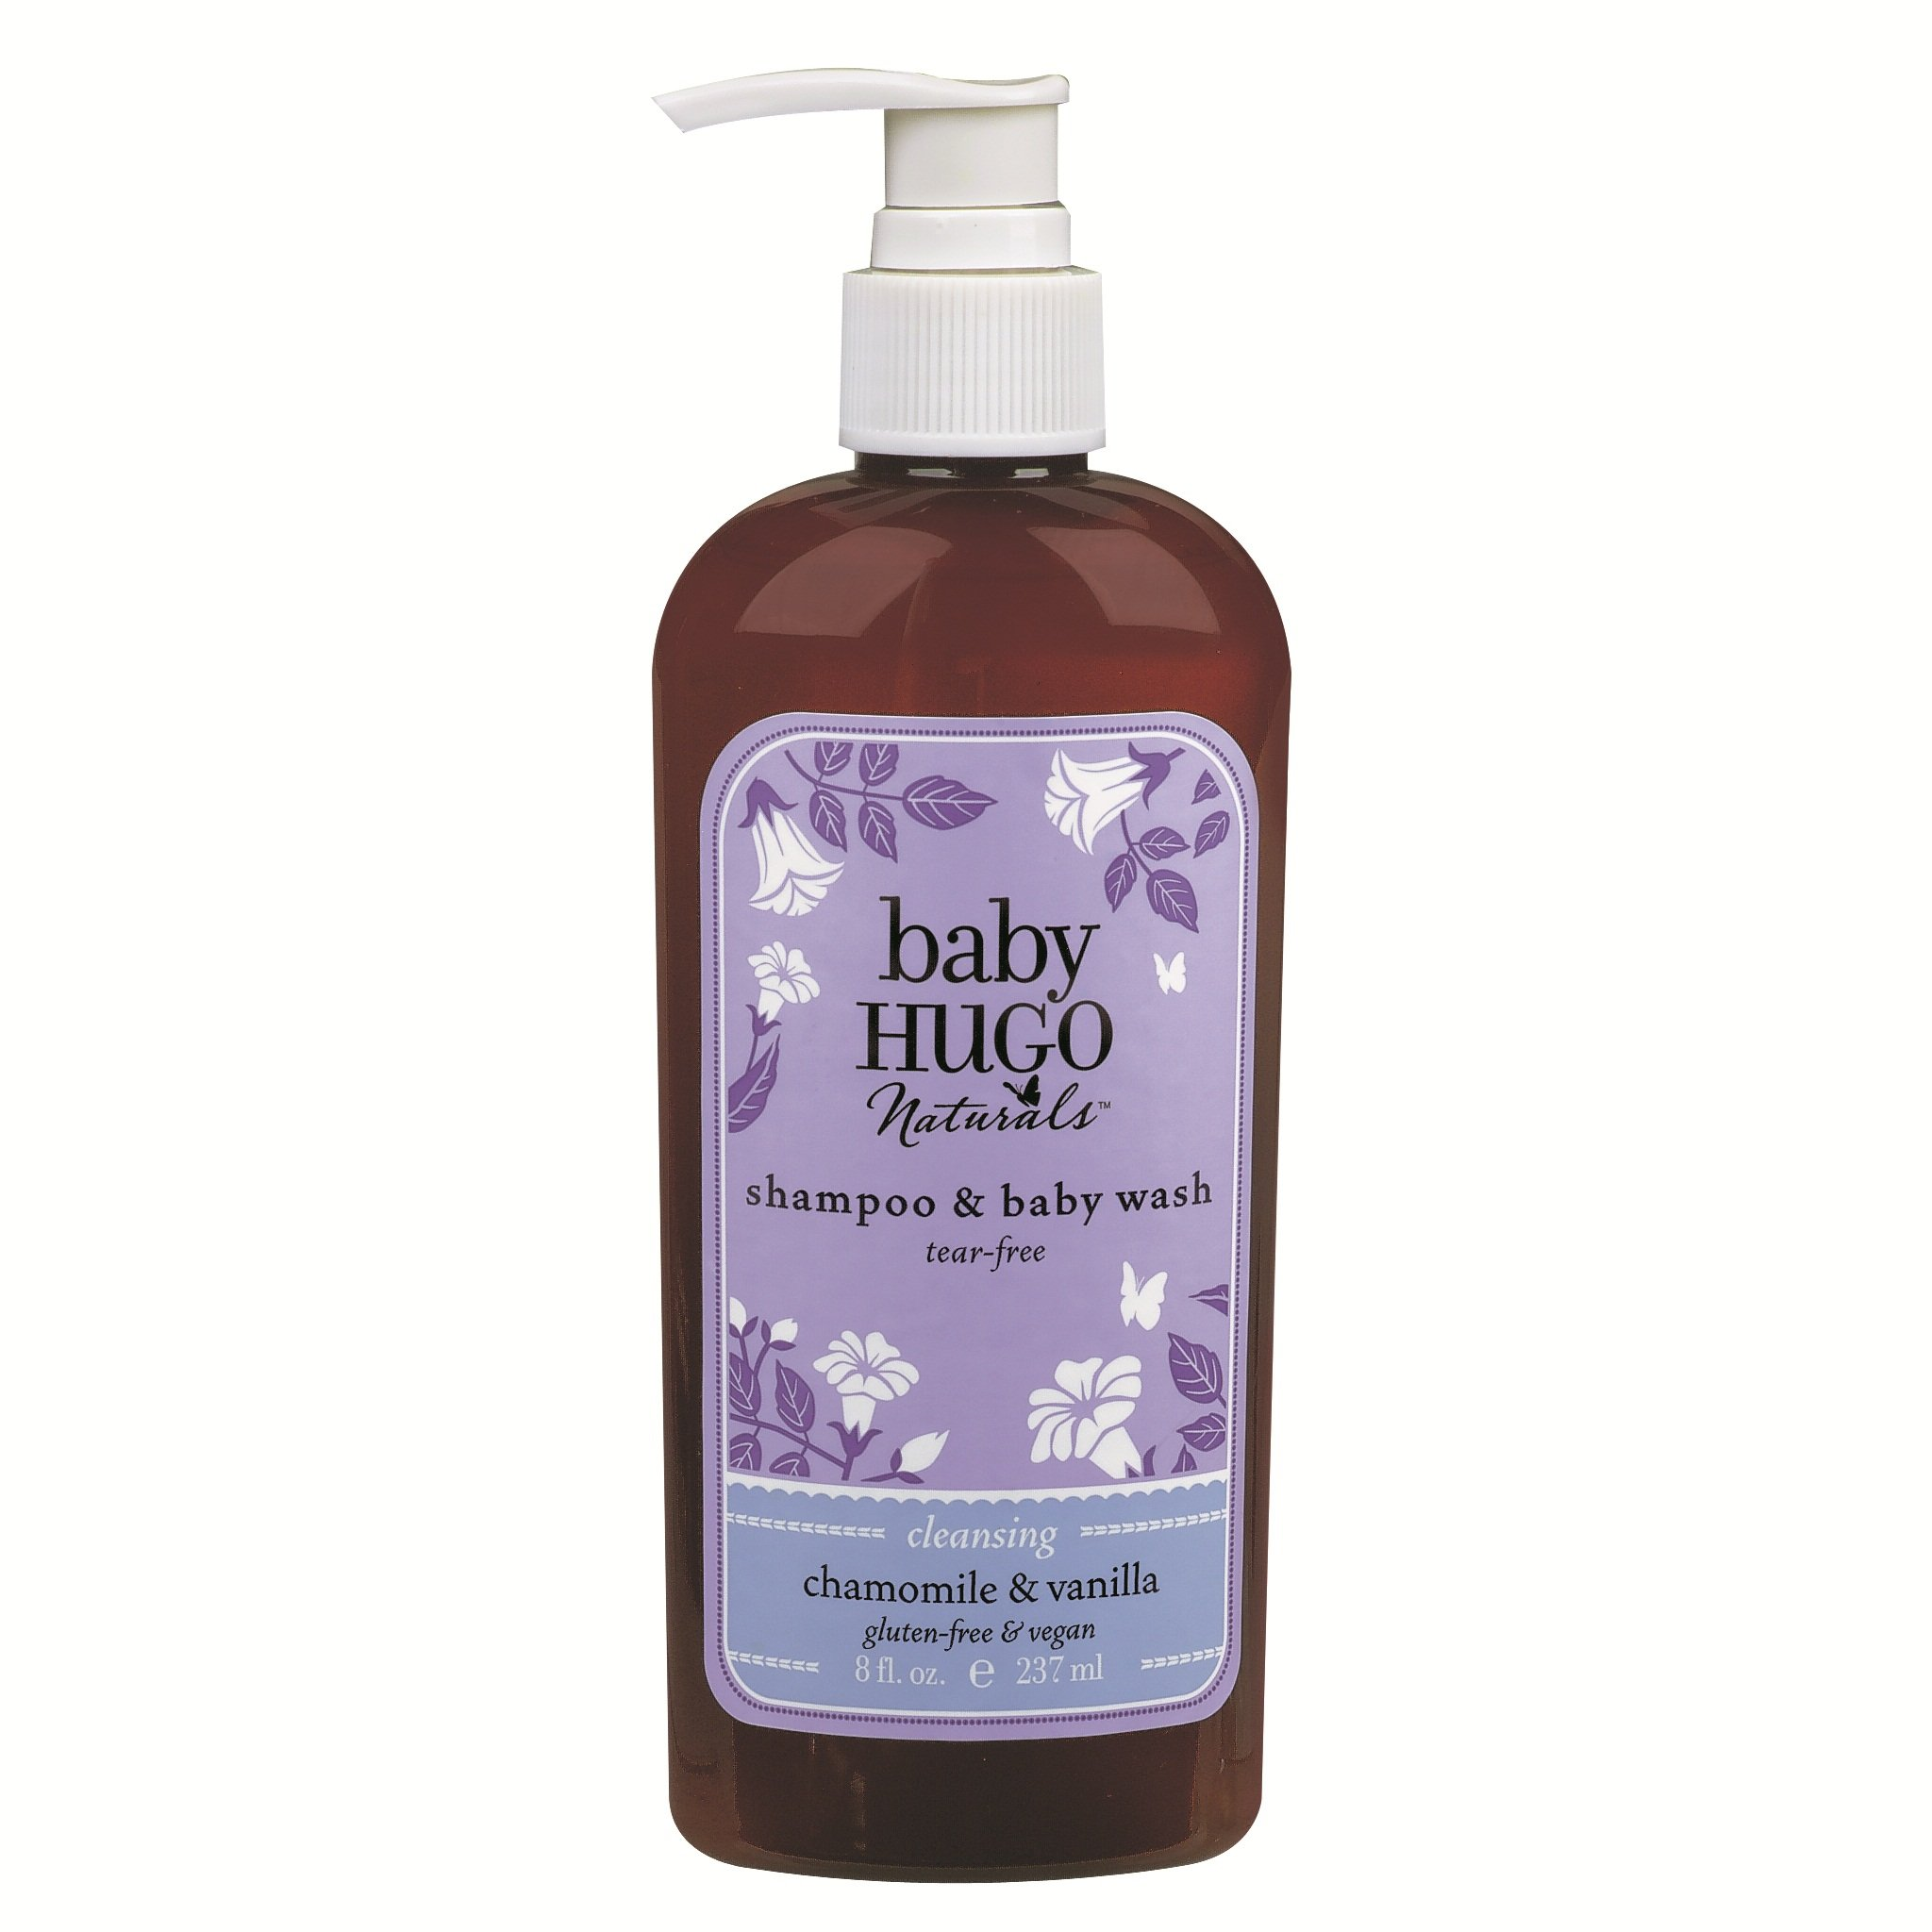 Hugo Naturals Baby Shampoo & Baby Wash, Shea Butter & Chamomile, 8 Ounce Pump Bottle,  (Pack of 2)